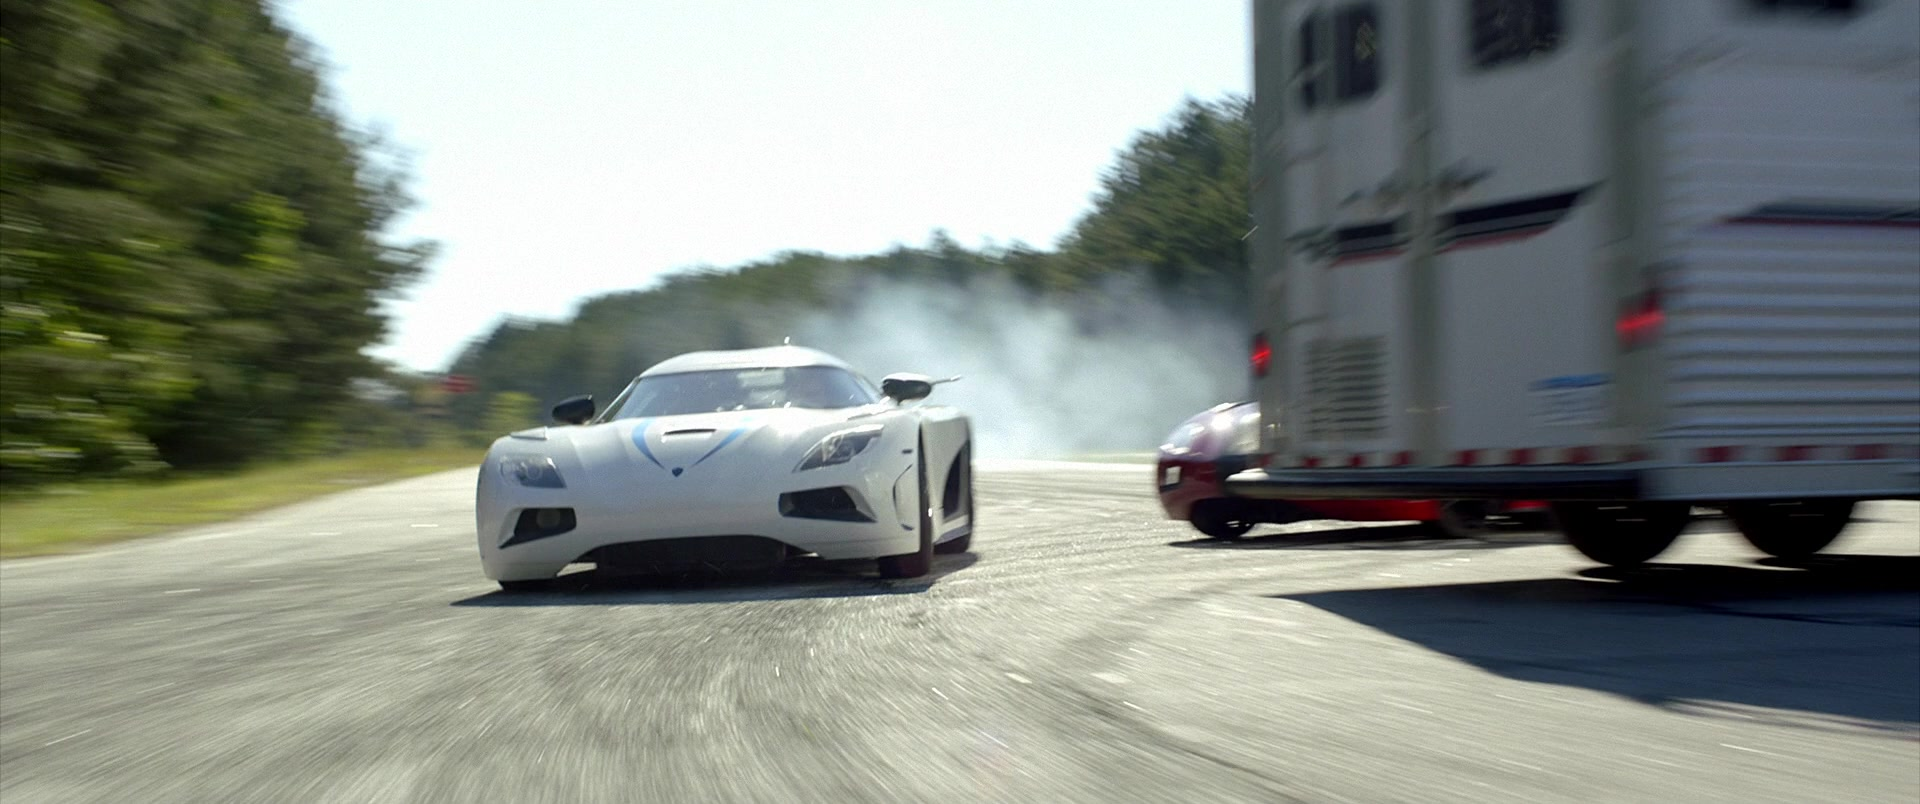 Koenigsegg Agera R White Sports Car Driven By Harrison